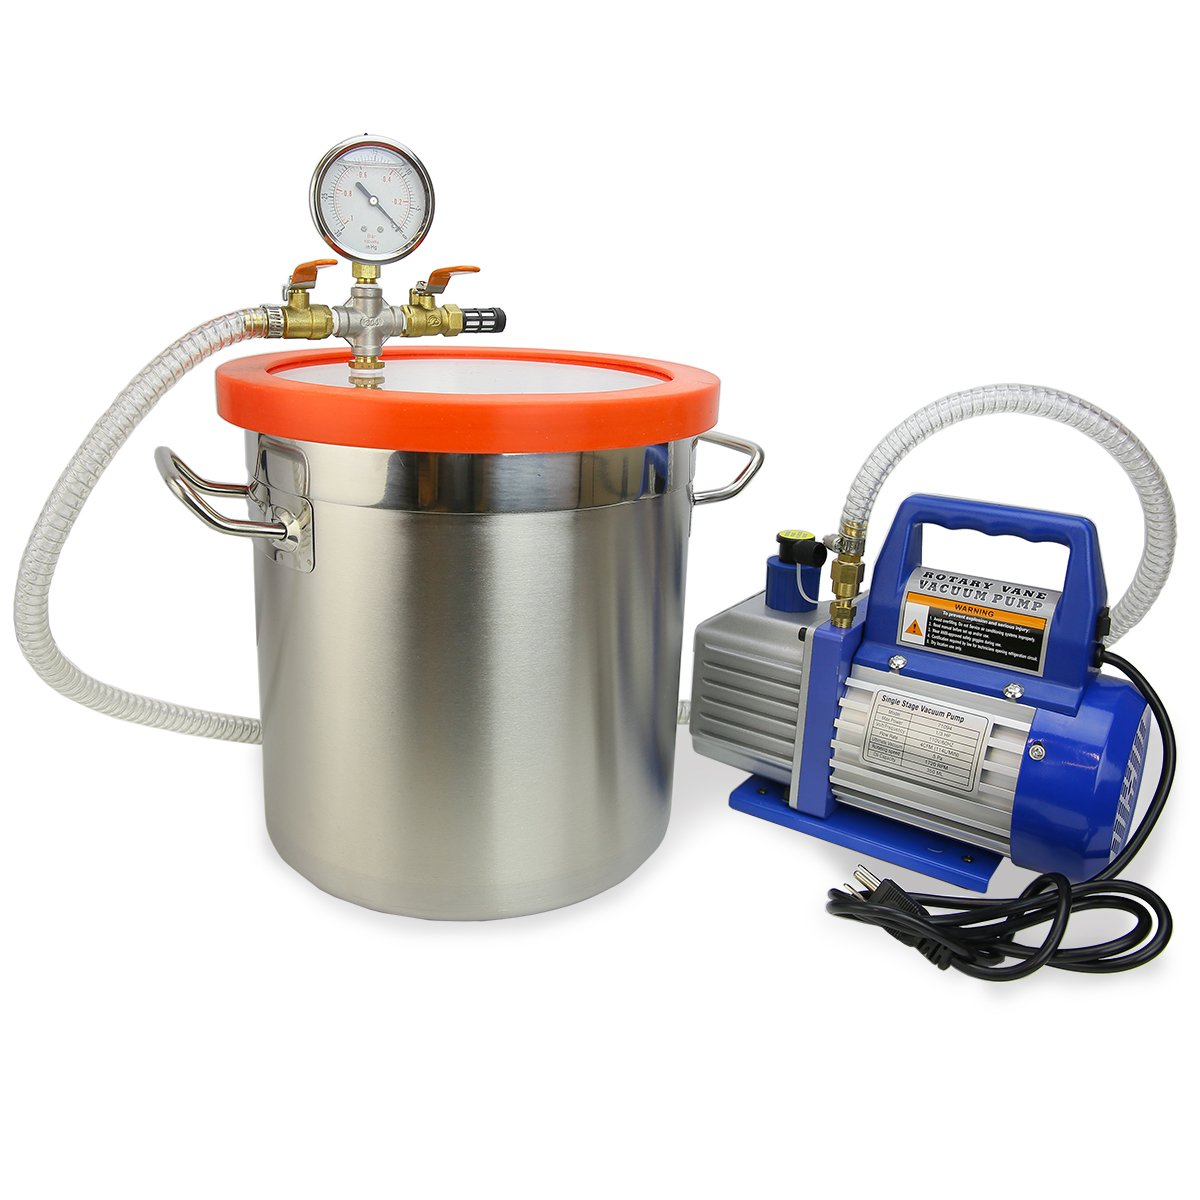 XtremepowerUS 4 CFM Single Stage Vacuum Pump 2 Gallons Chamber Kit Degass Urethanes, Silicones and Epoxies by XtremepowerUS (Image #1)